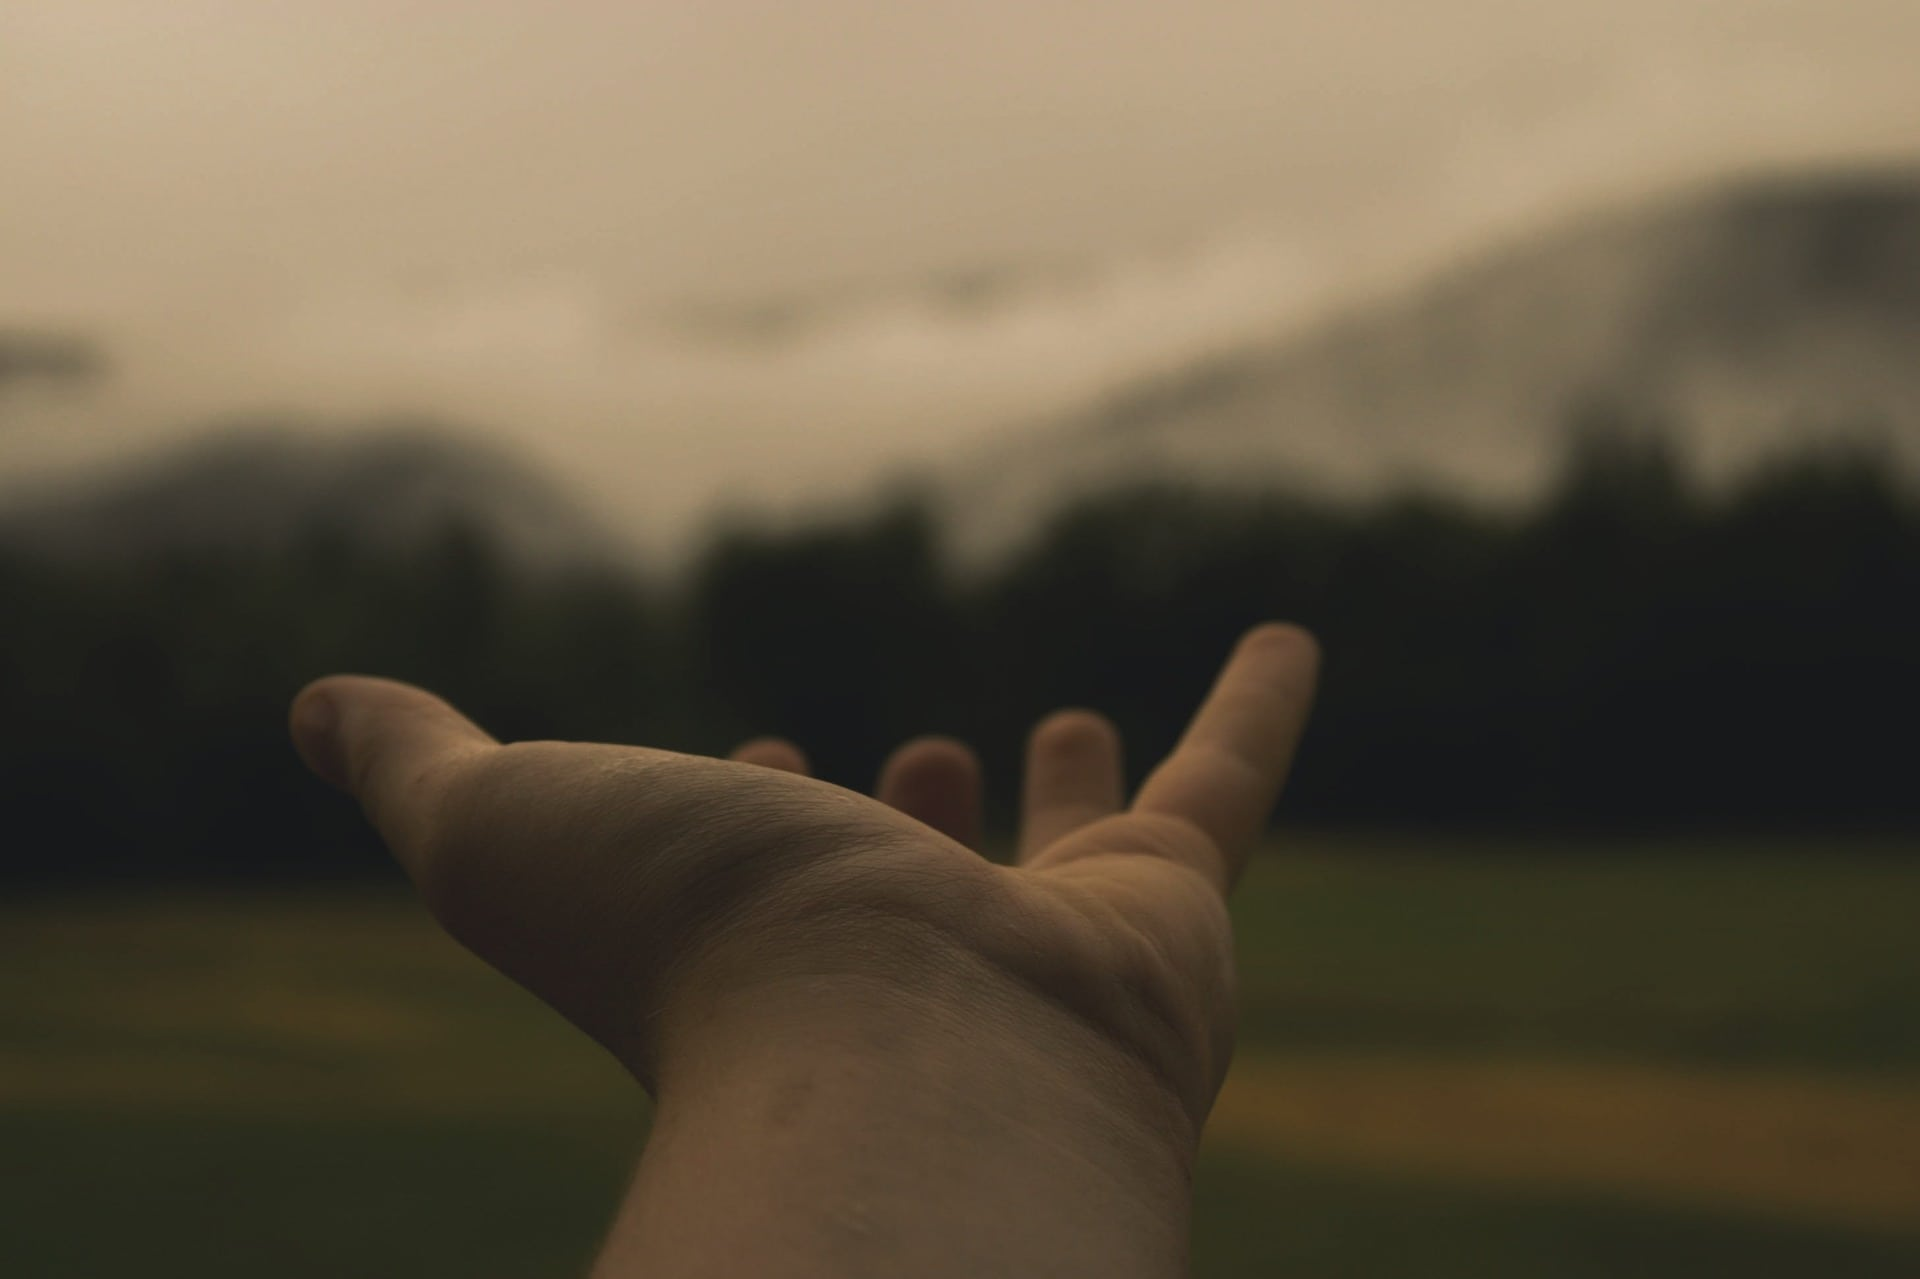 A photograph of a hand outstretched, palm up, with mountains in the background.